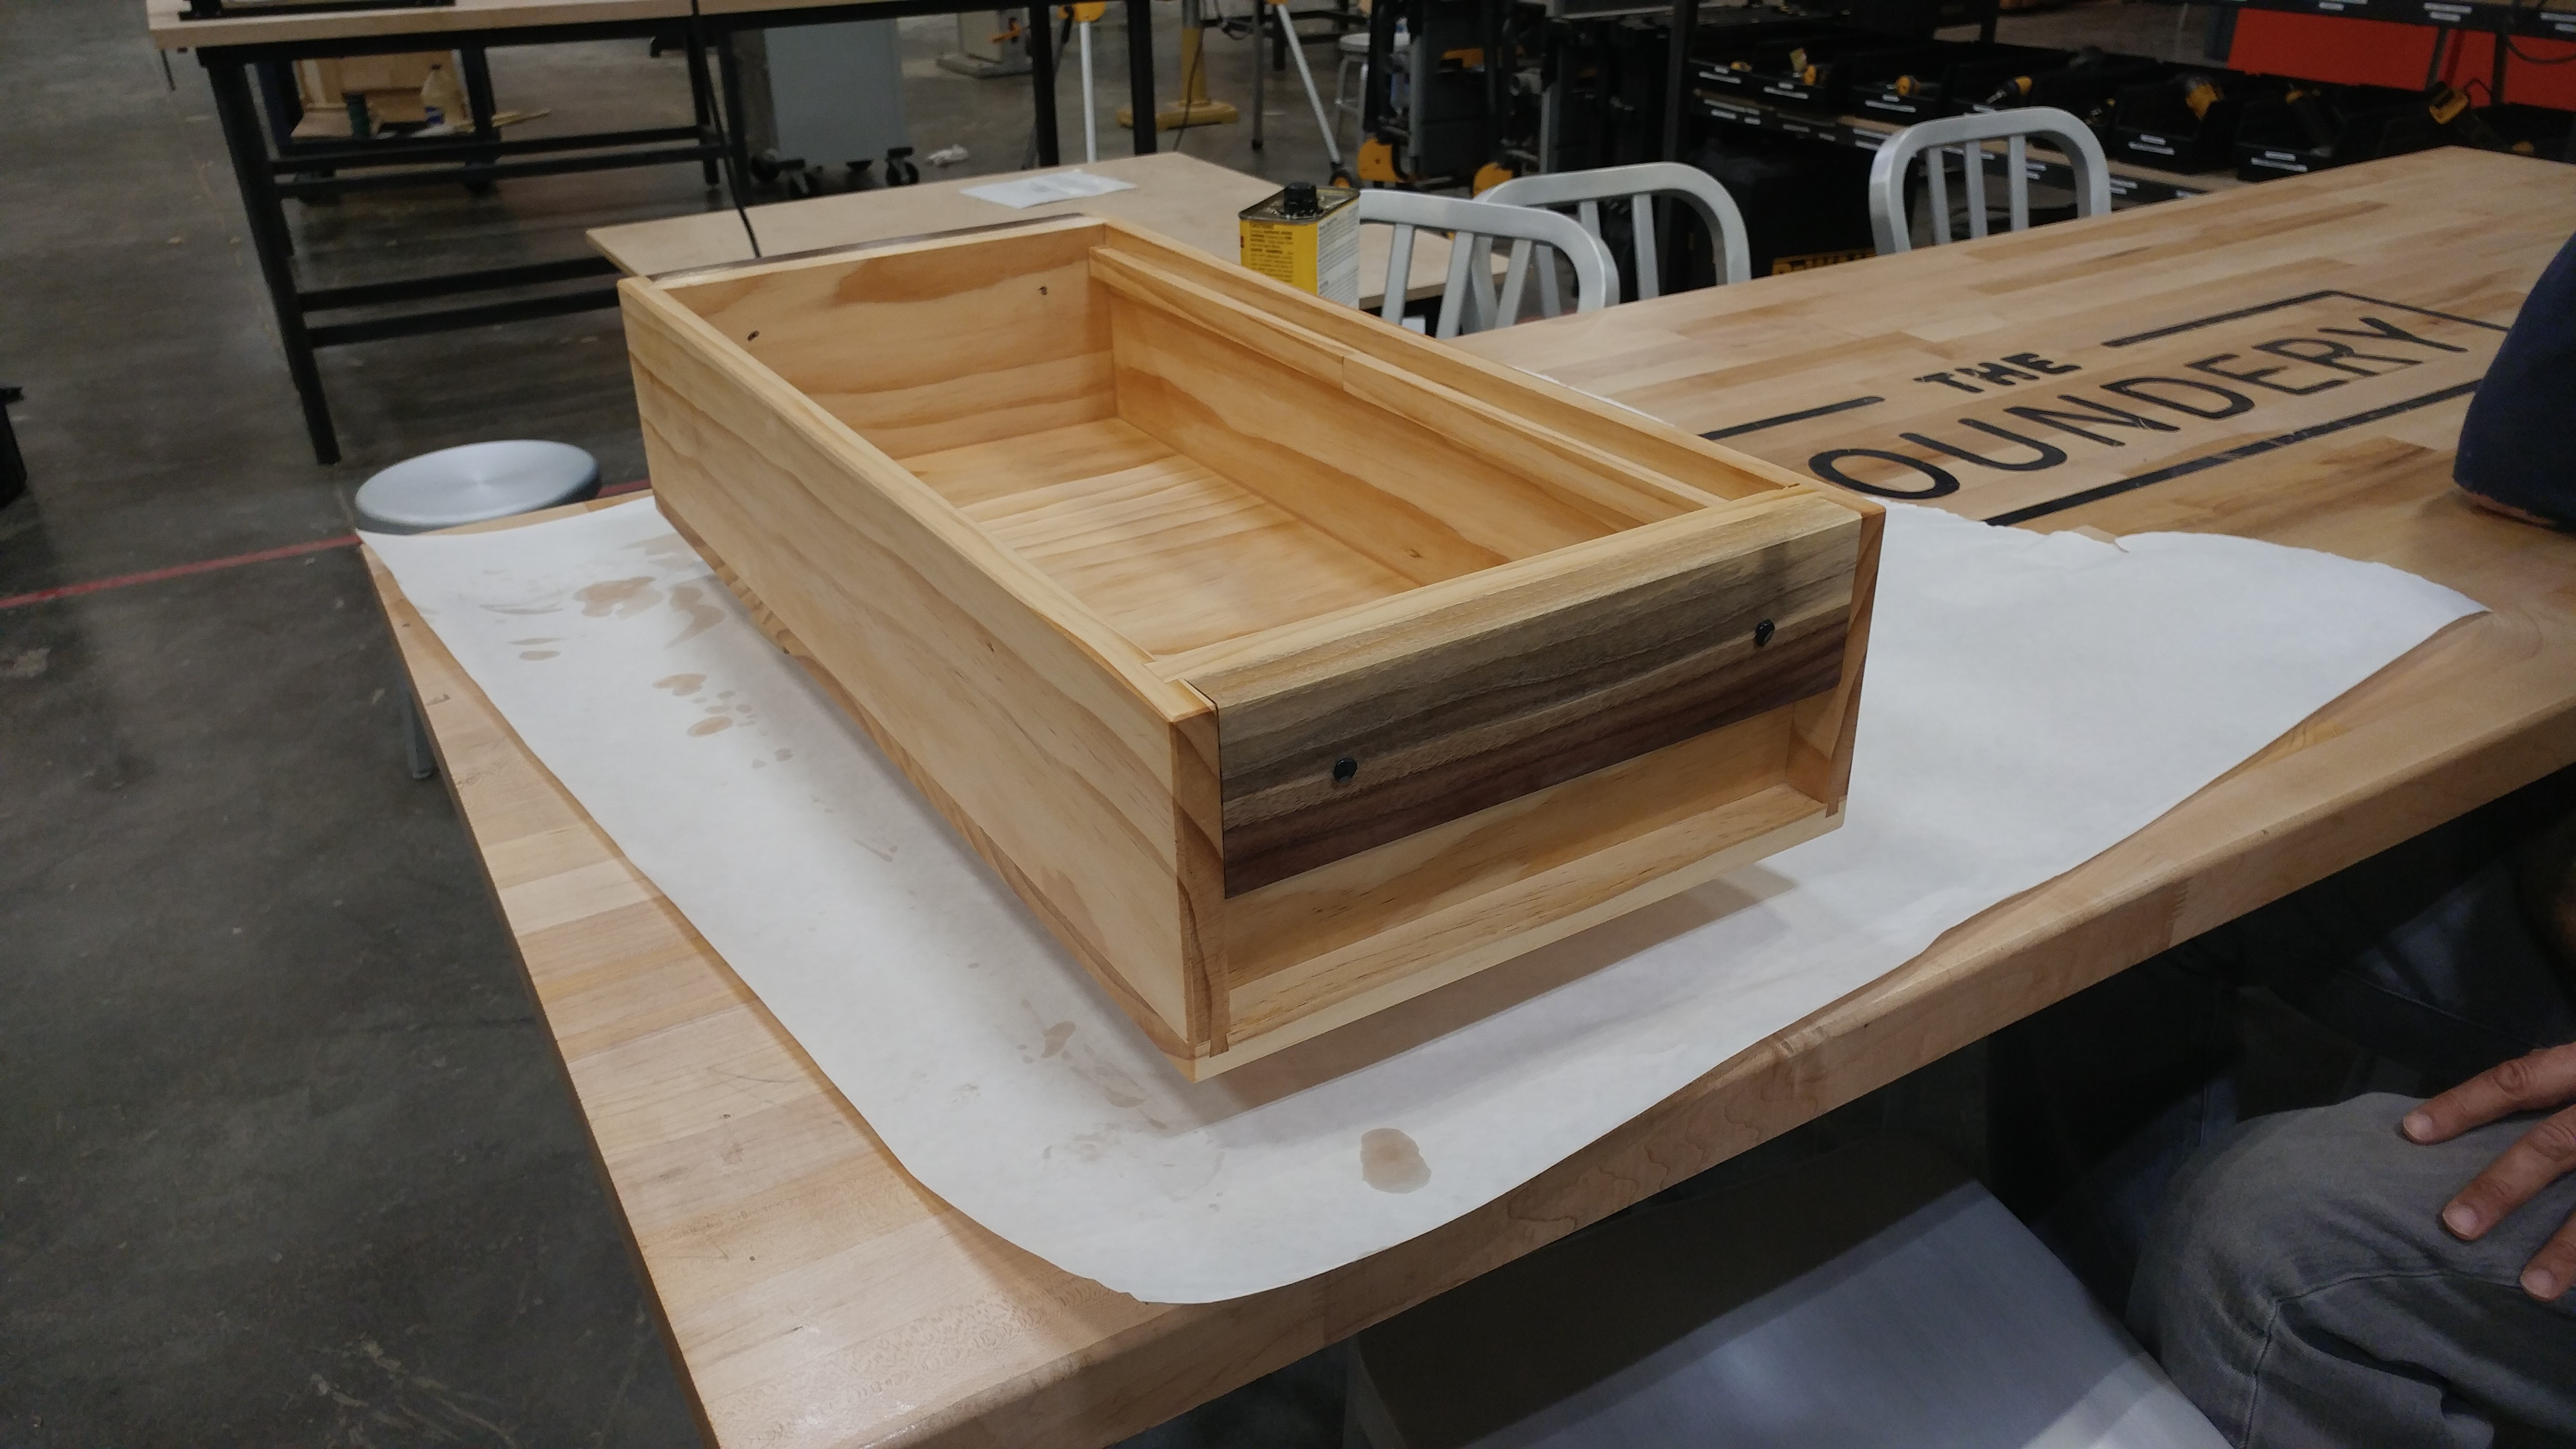 applying the Tung oil finish